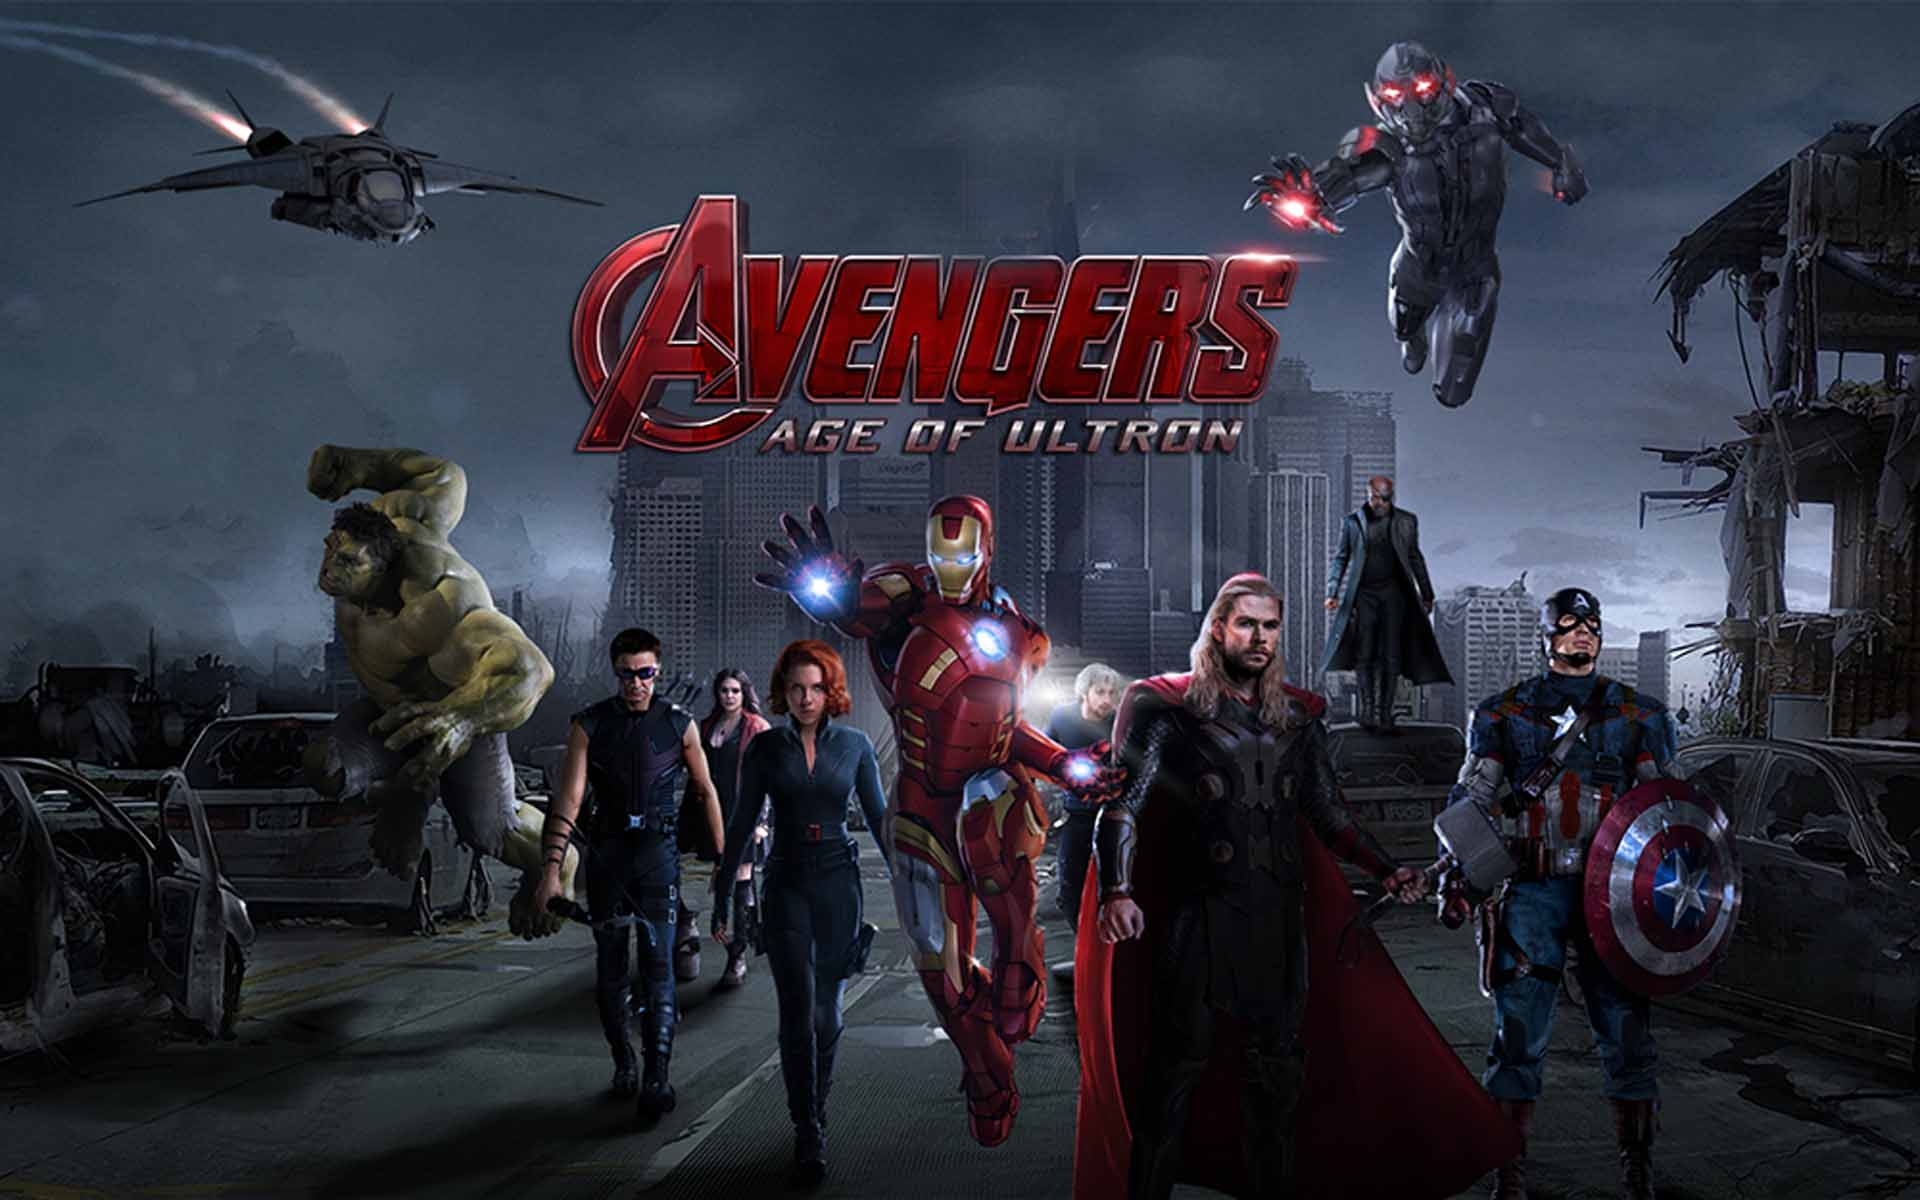 avengers: age of ultron hd desktop wallpapers | 7wallpapers